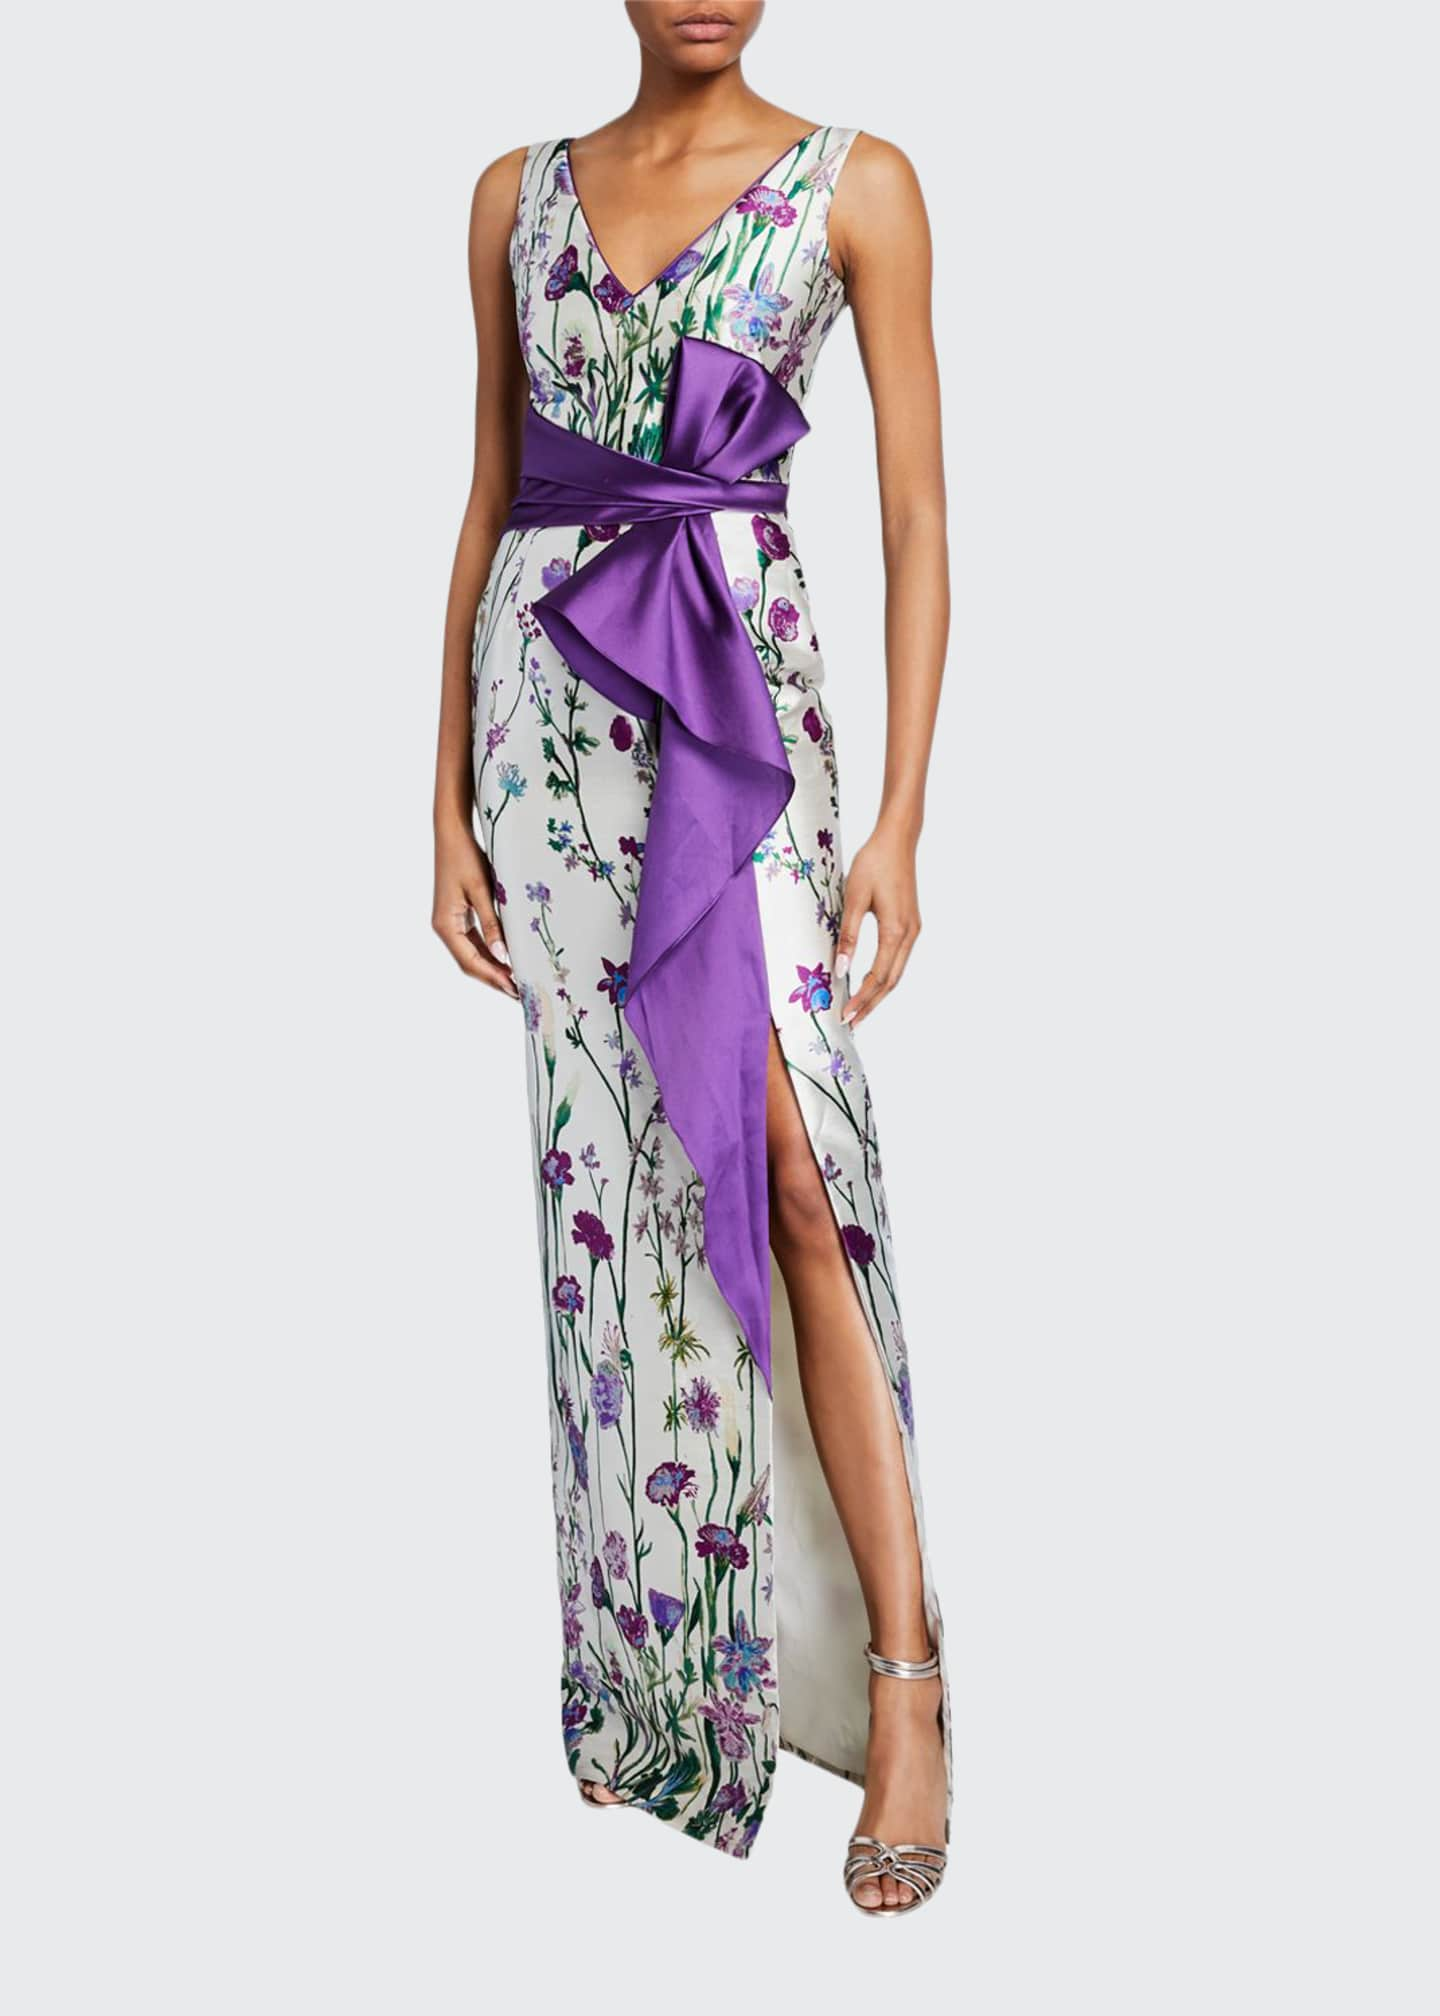 Marchesa Notte Floral-Print V-Neck Sleeveless Mikado Gown w/